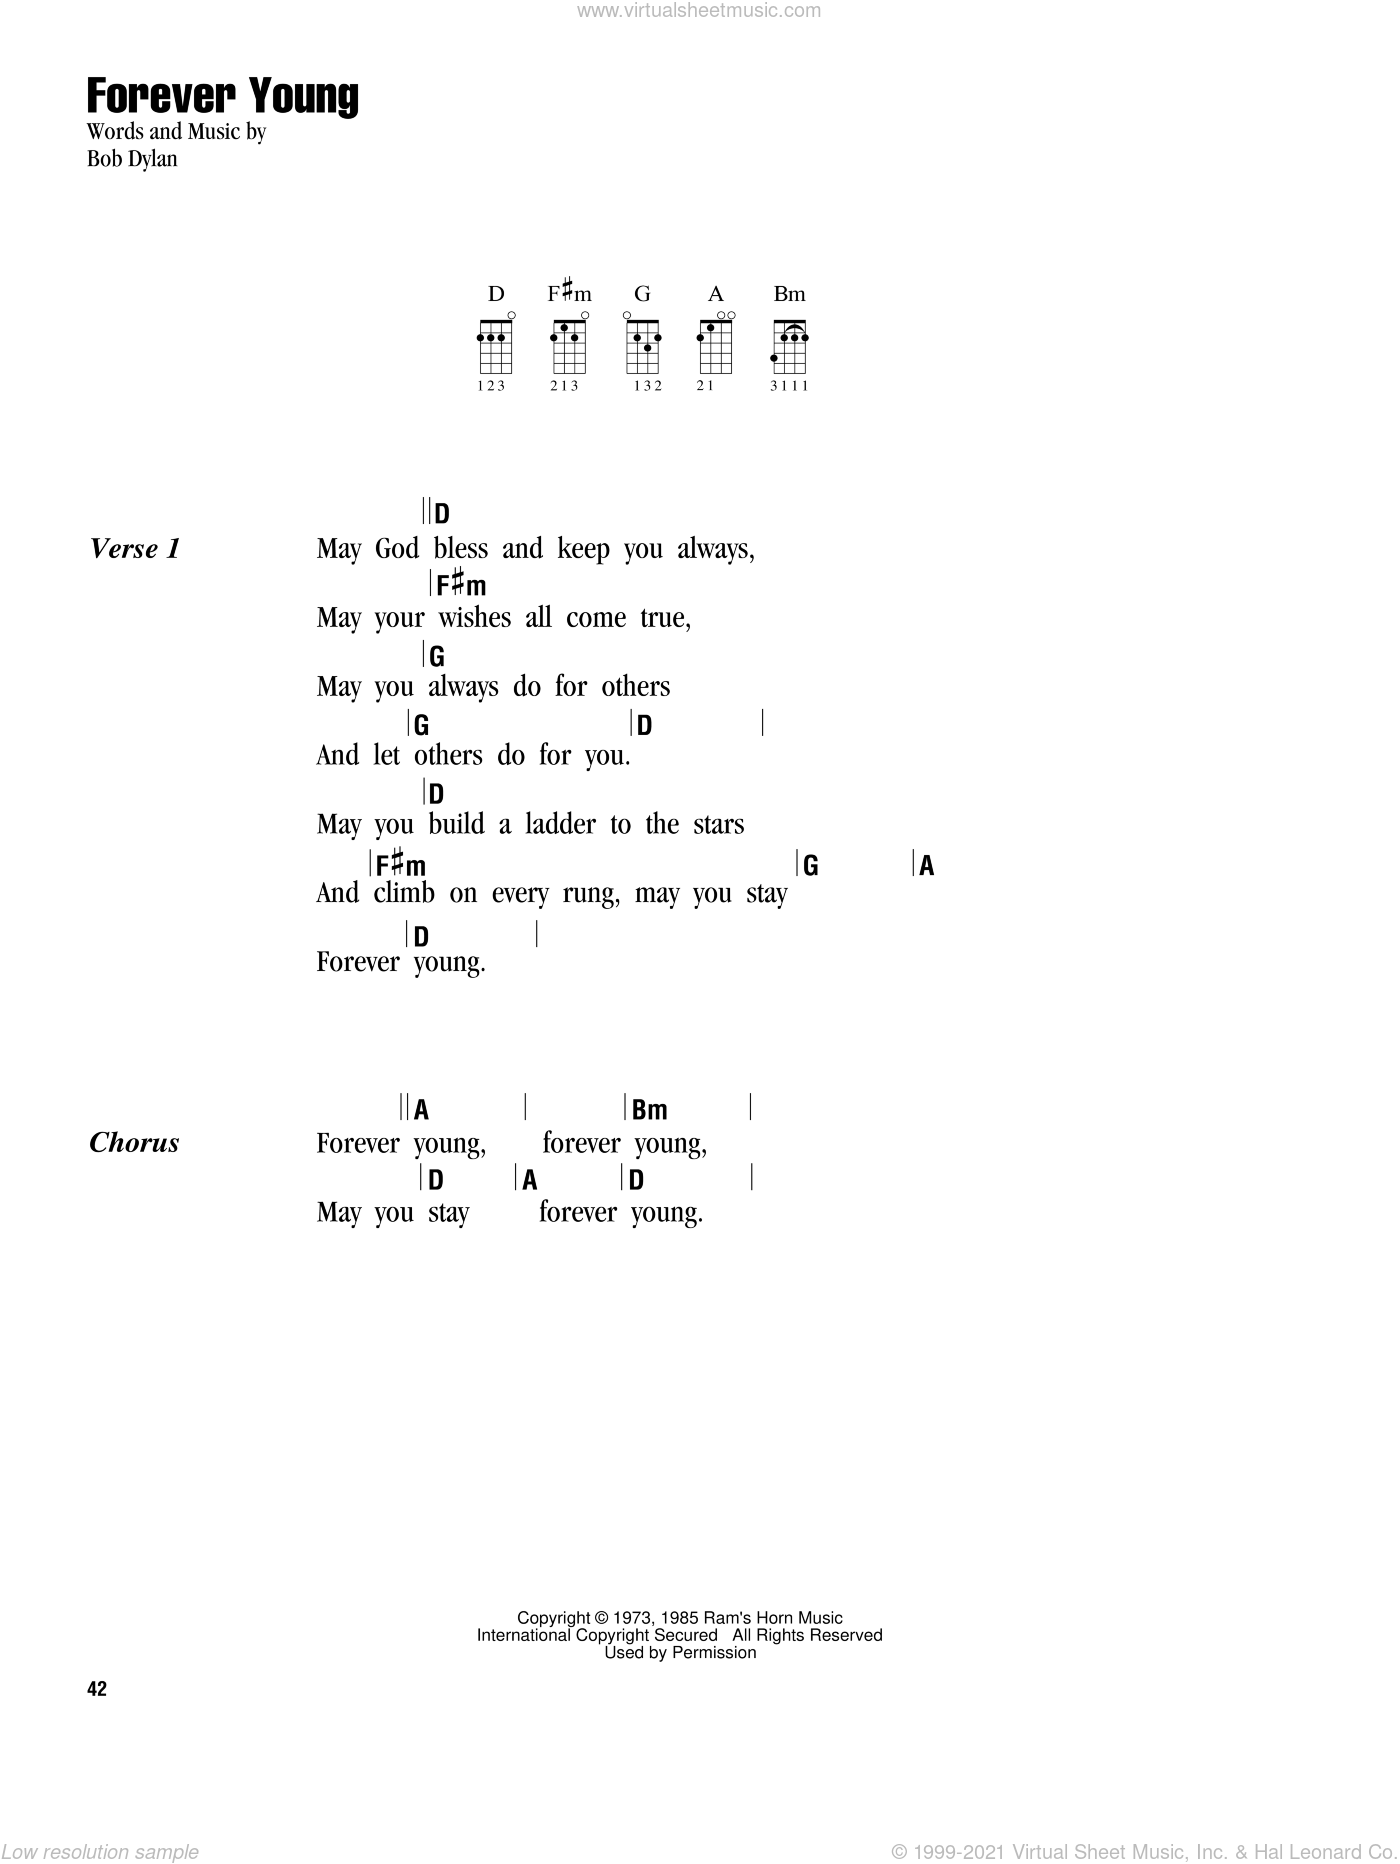 Forever Young sheet music for ukulele (chords) by Bob Dylan. Score Image Preview.